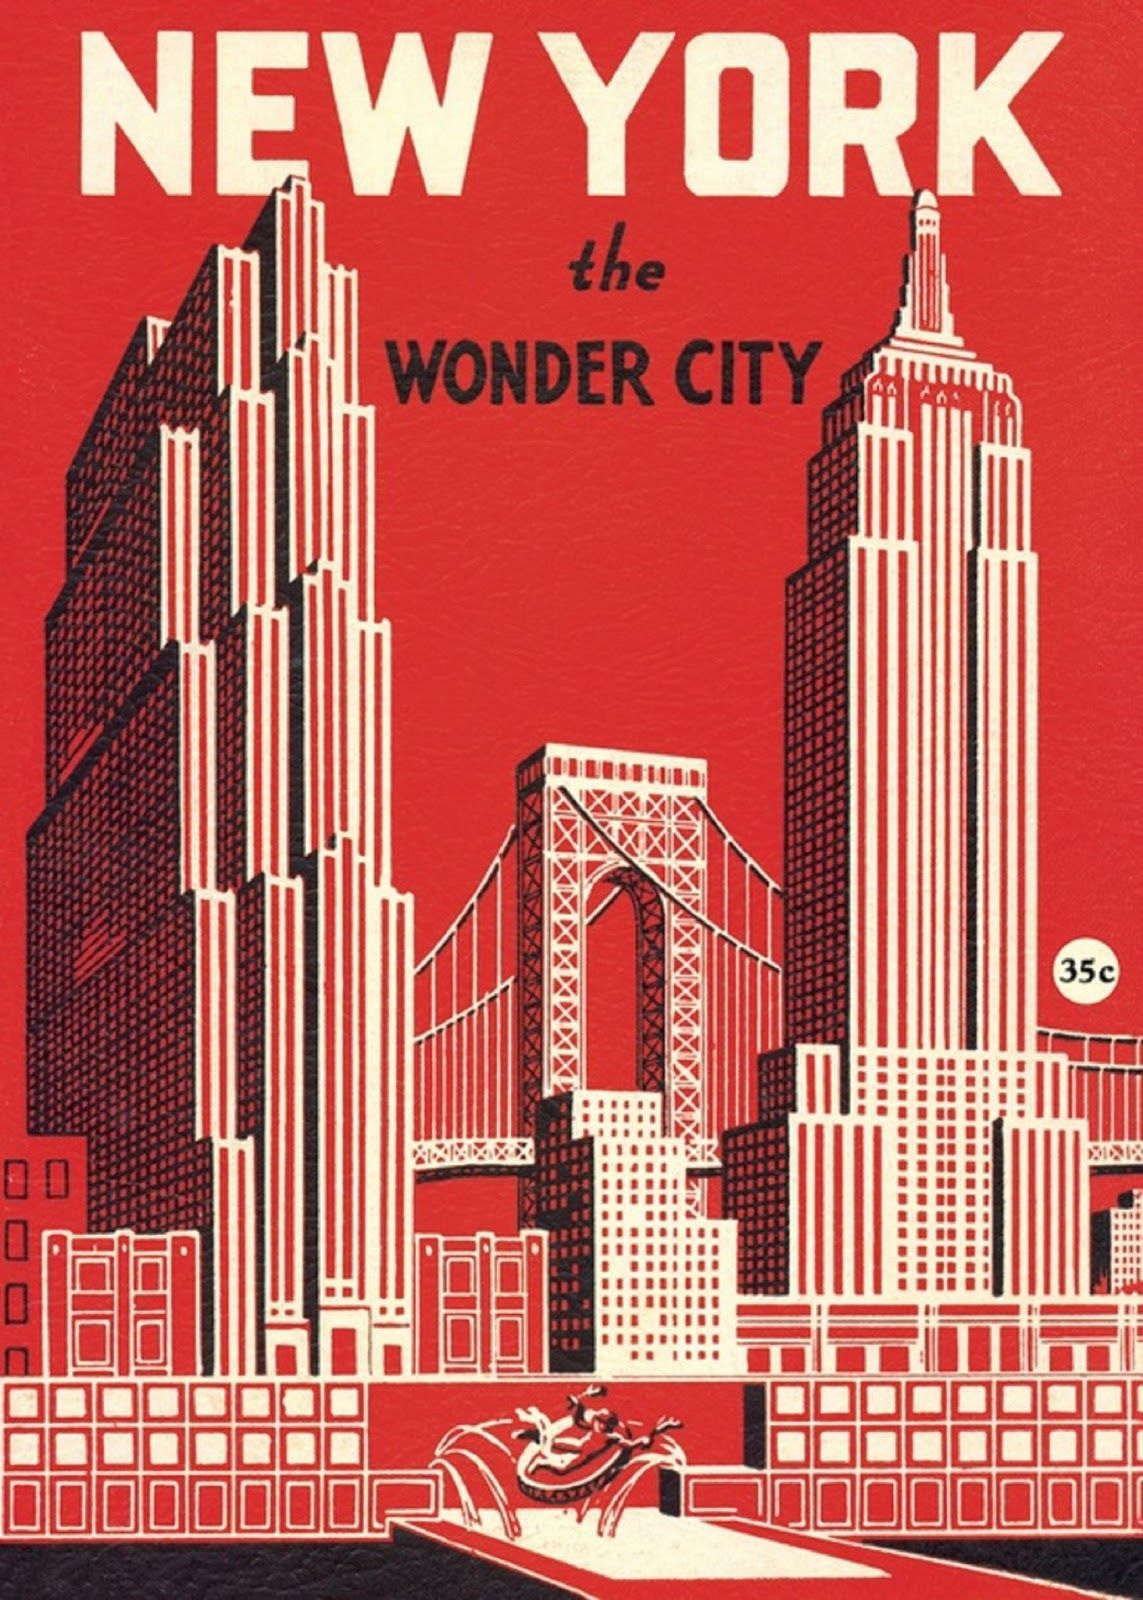 Art Deco Poster New York.Pin By Martha Patey On Vintage Travel Posters In 2019 Vintage